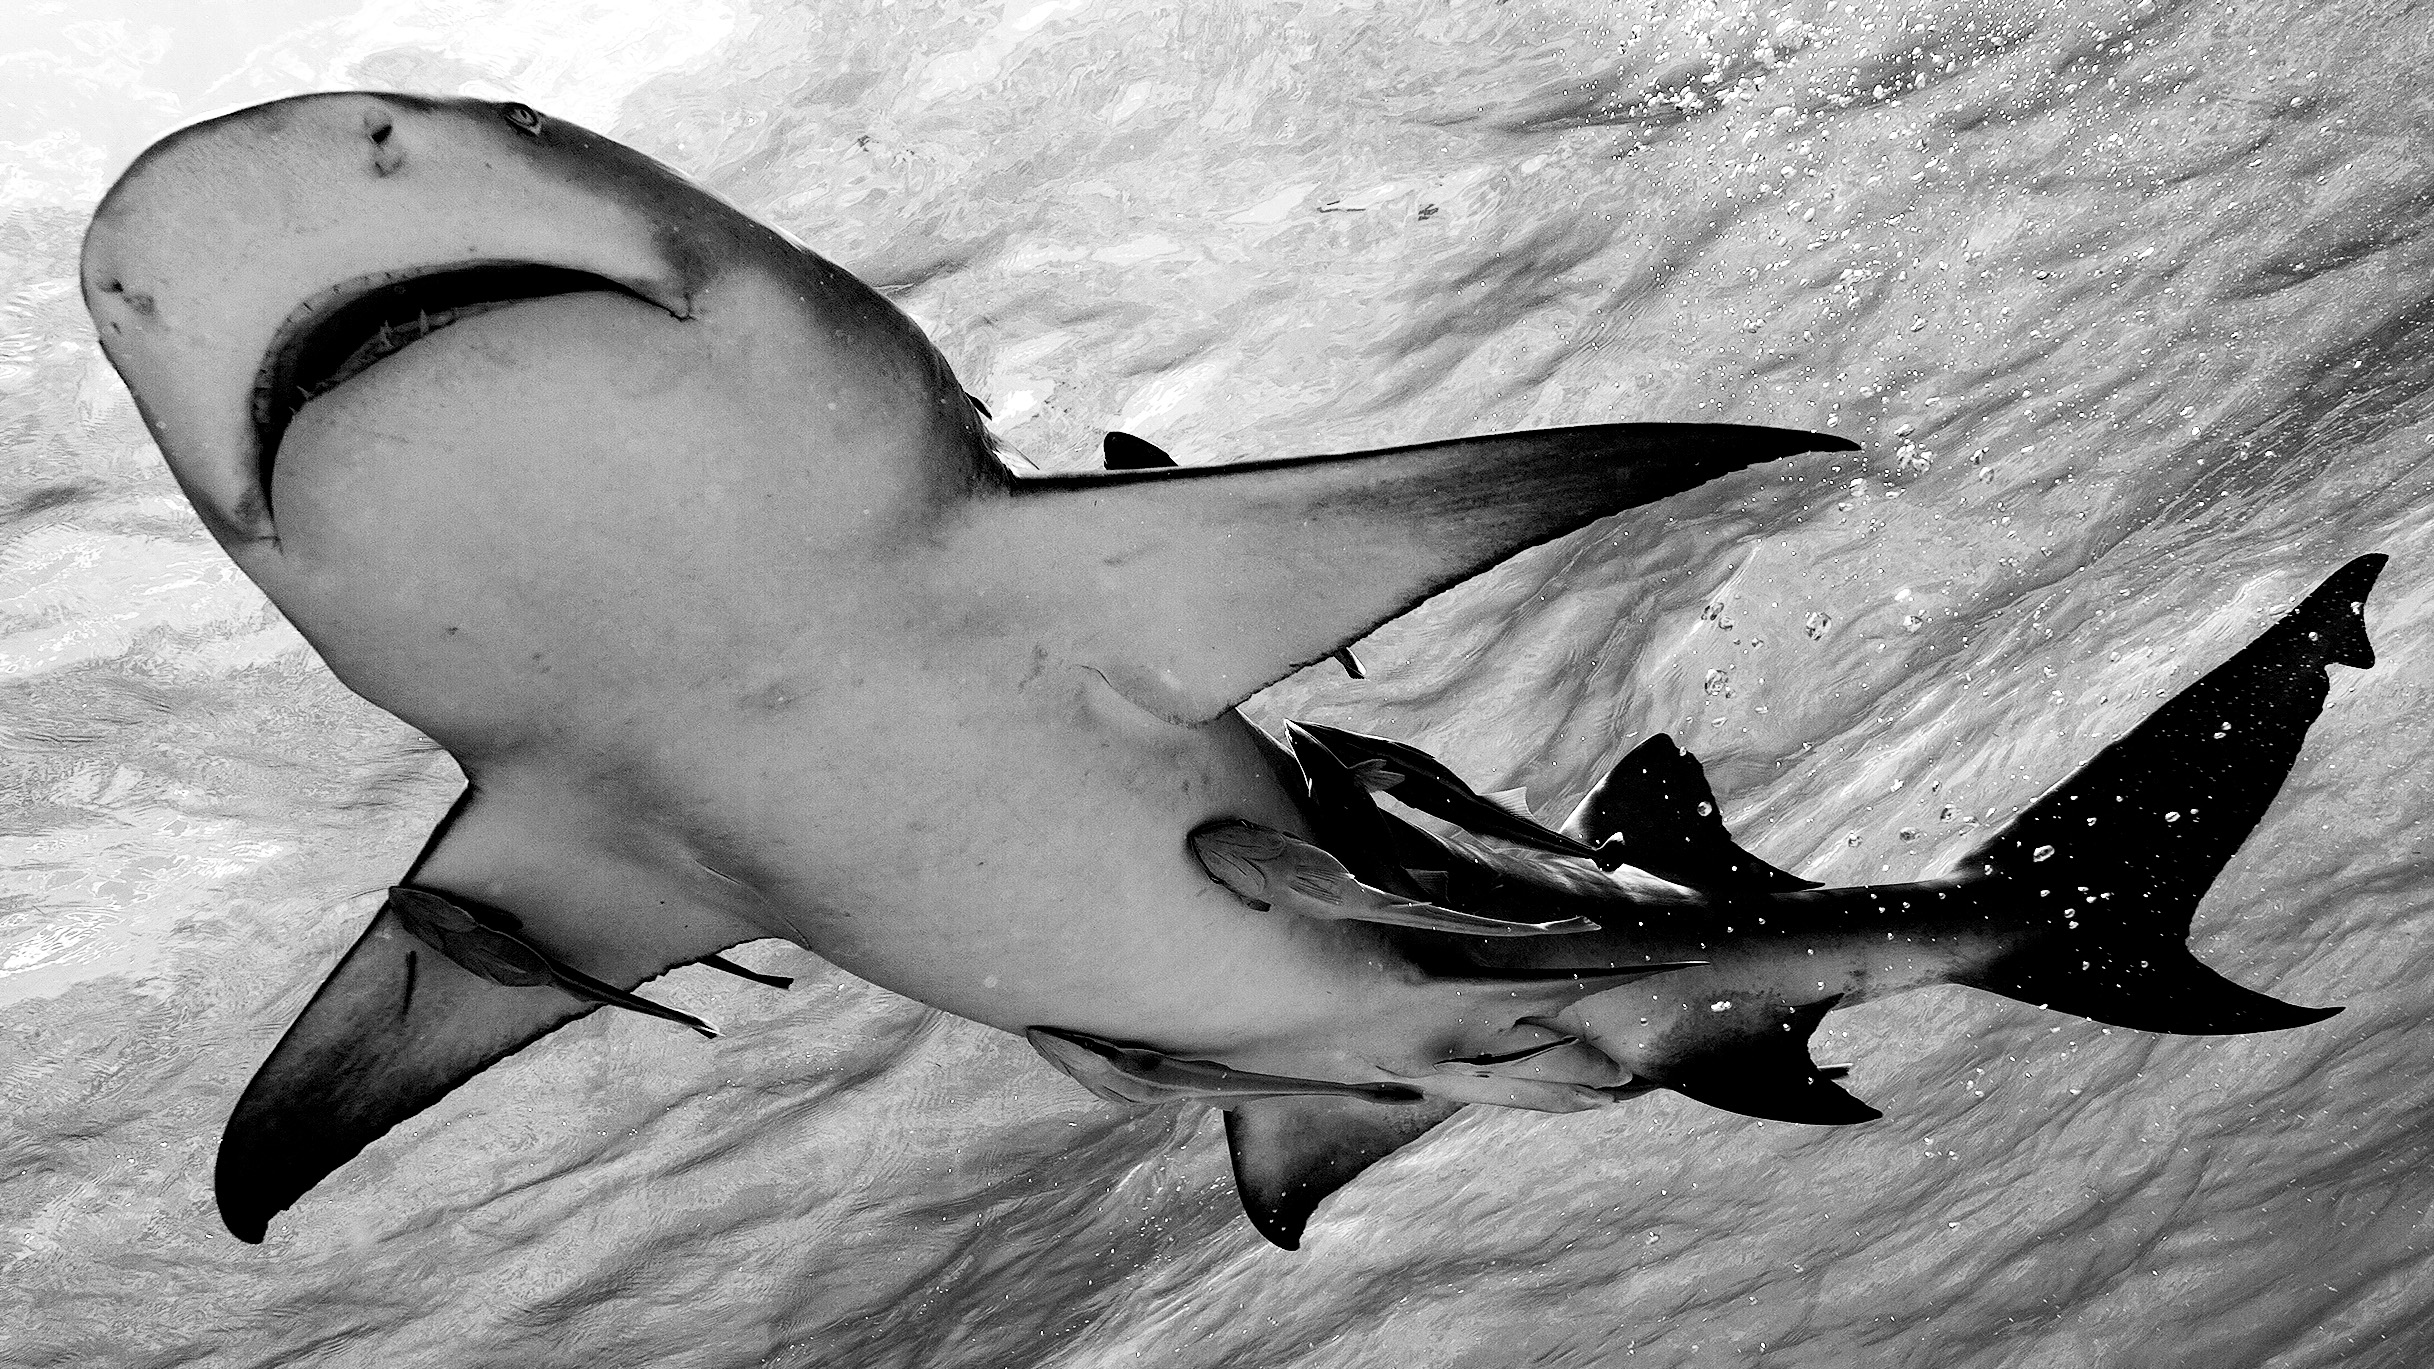 View of shark from below